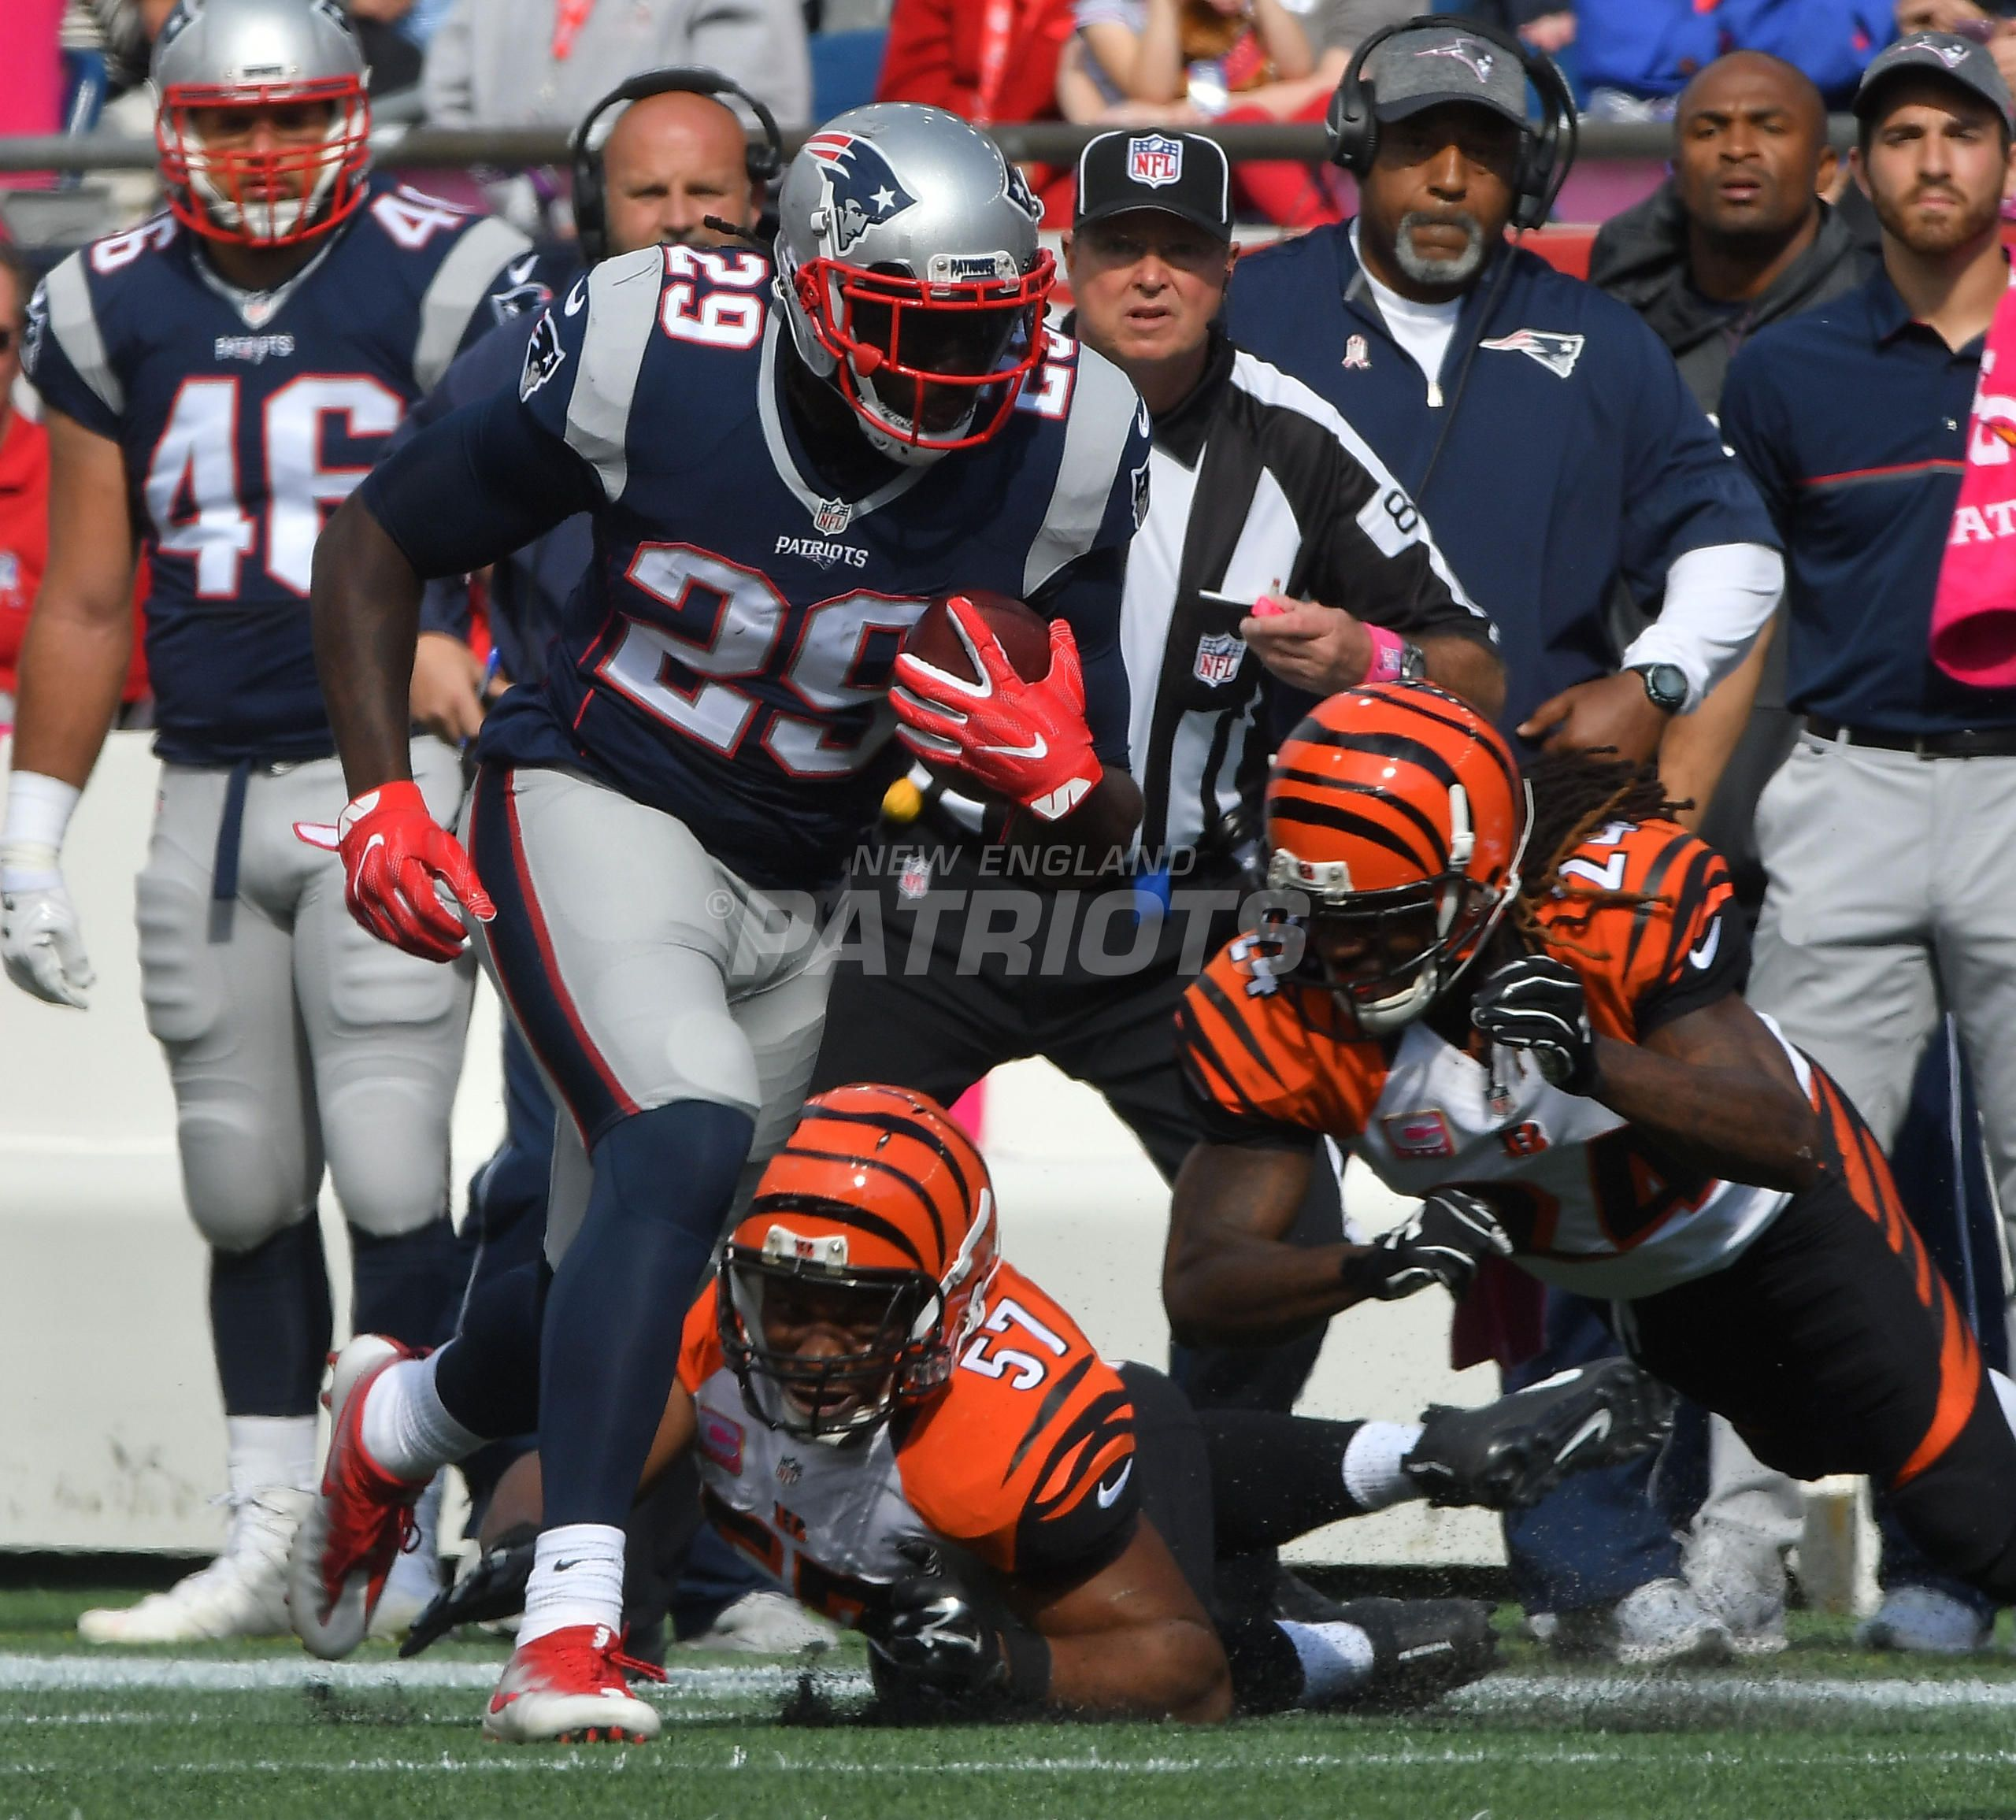 Patriots Vs Bengals Week 6 With Images Bengals Patriots New England Patriots A patriots advanced scout was at firstenergy stadium in cleveland on sunday during the browns vs. pinterest